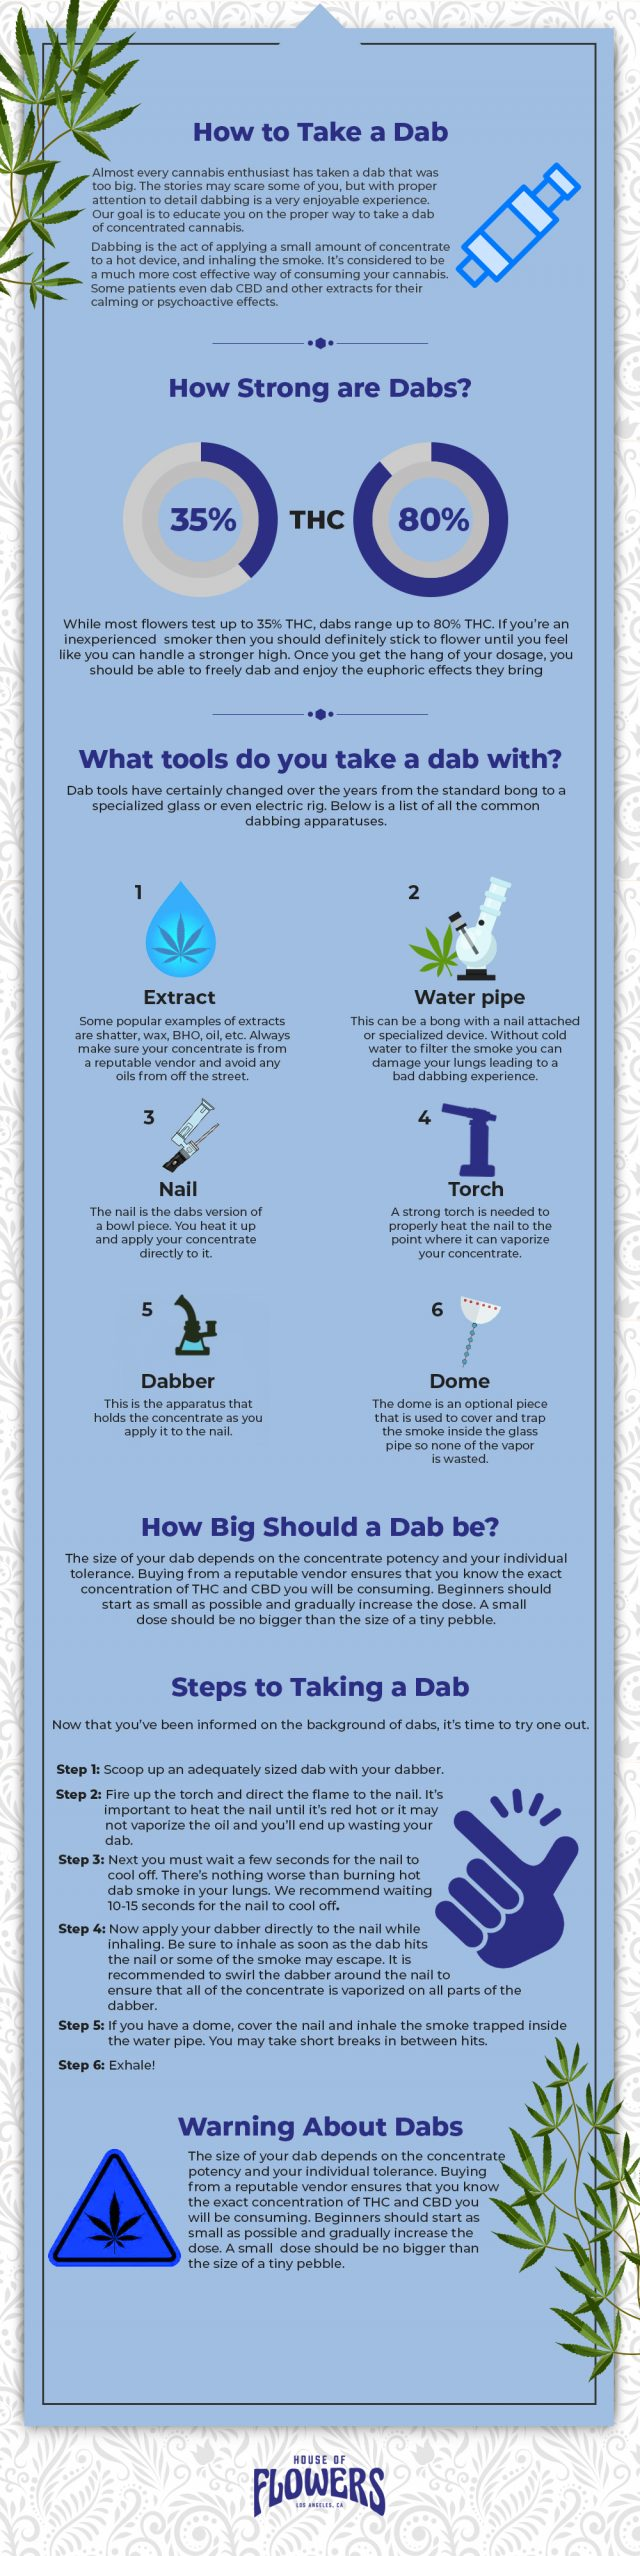 infographic explaining how to take a dab